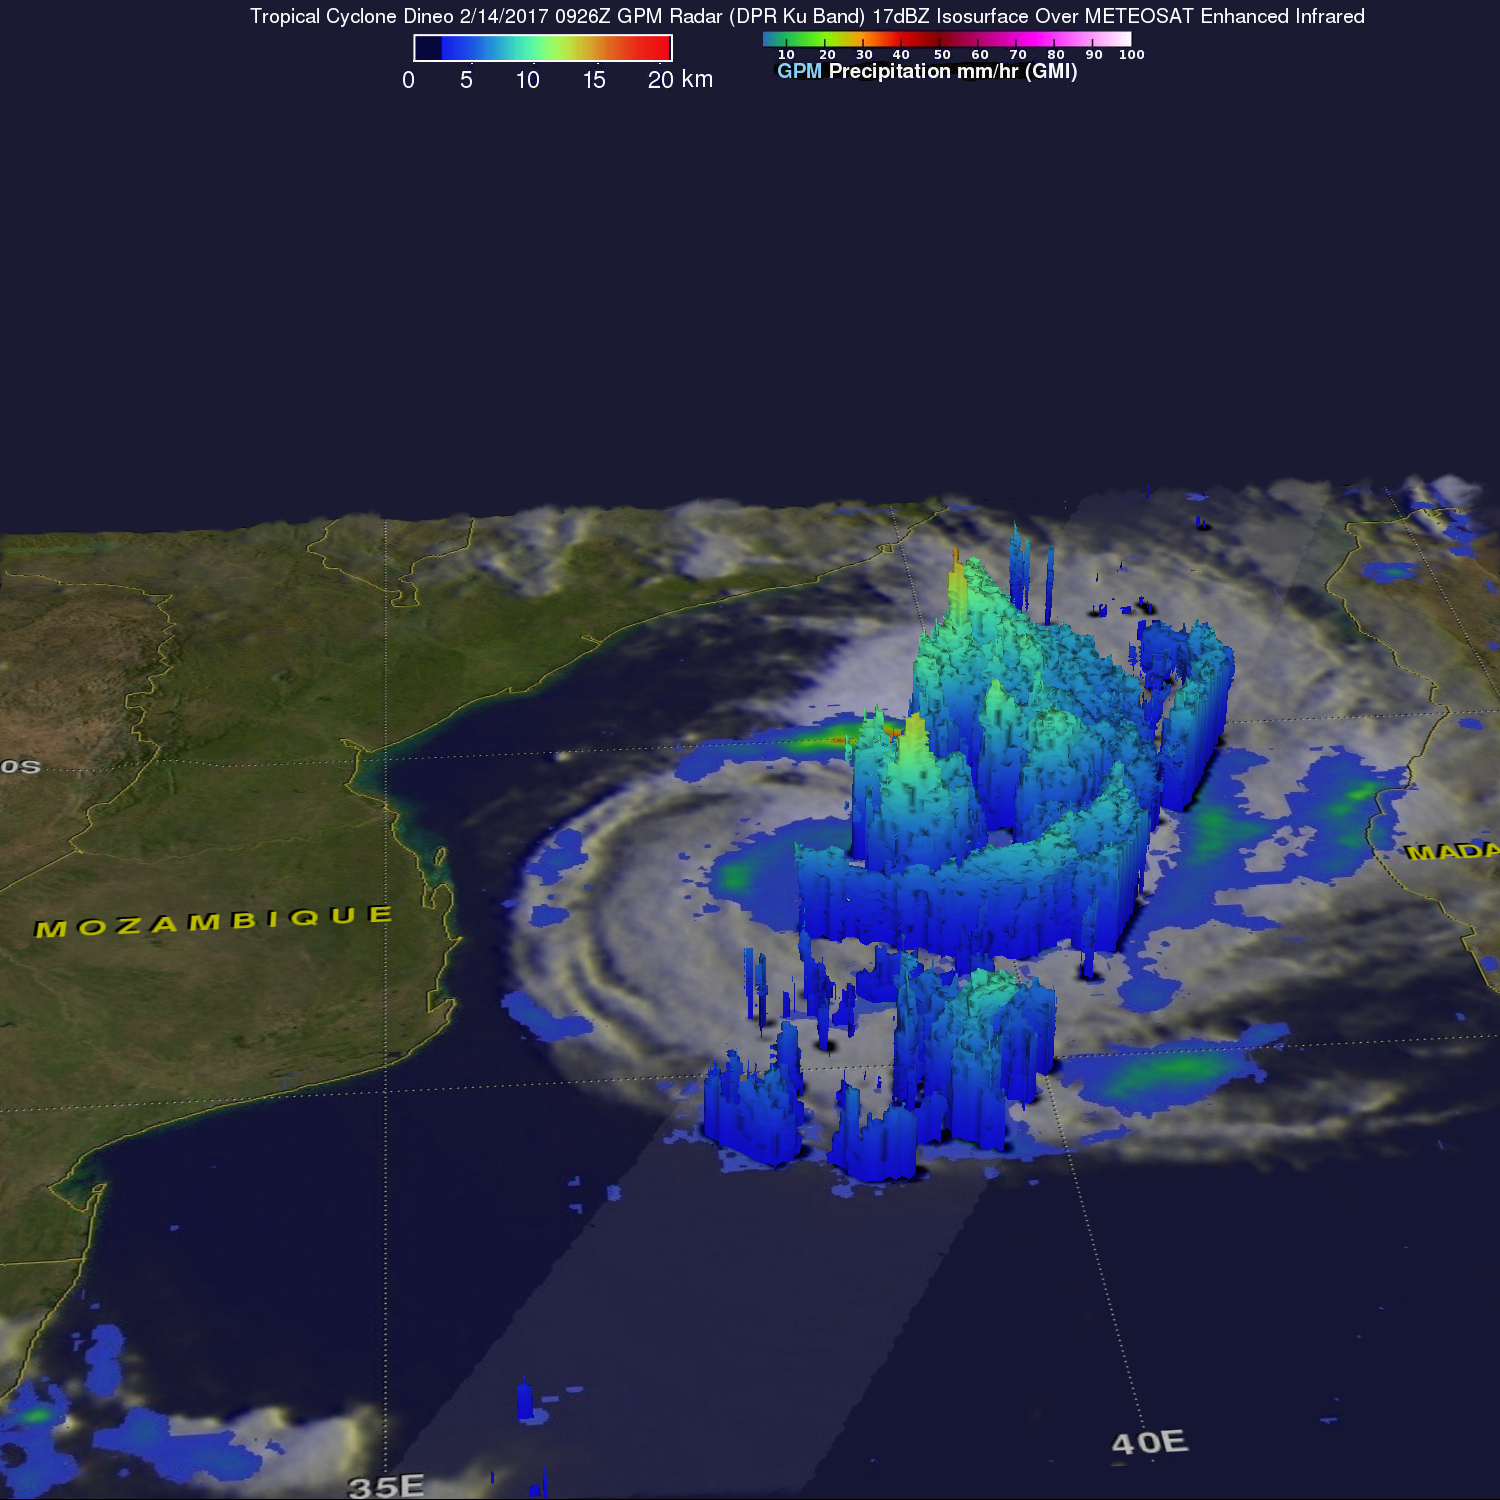 Intensifying Tropical Cyclone Dineo Seen By GPM